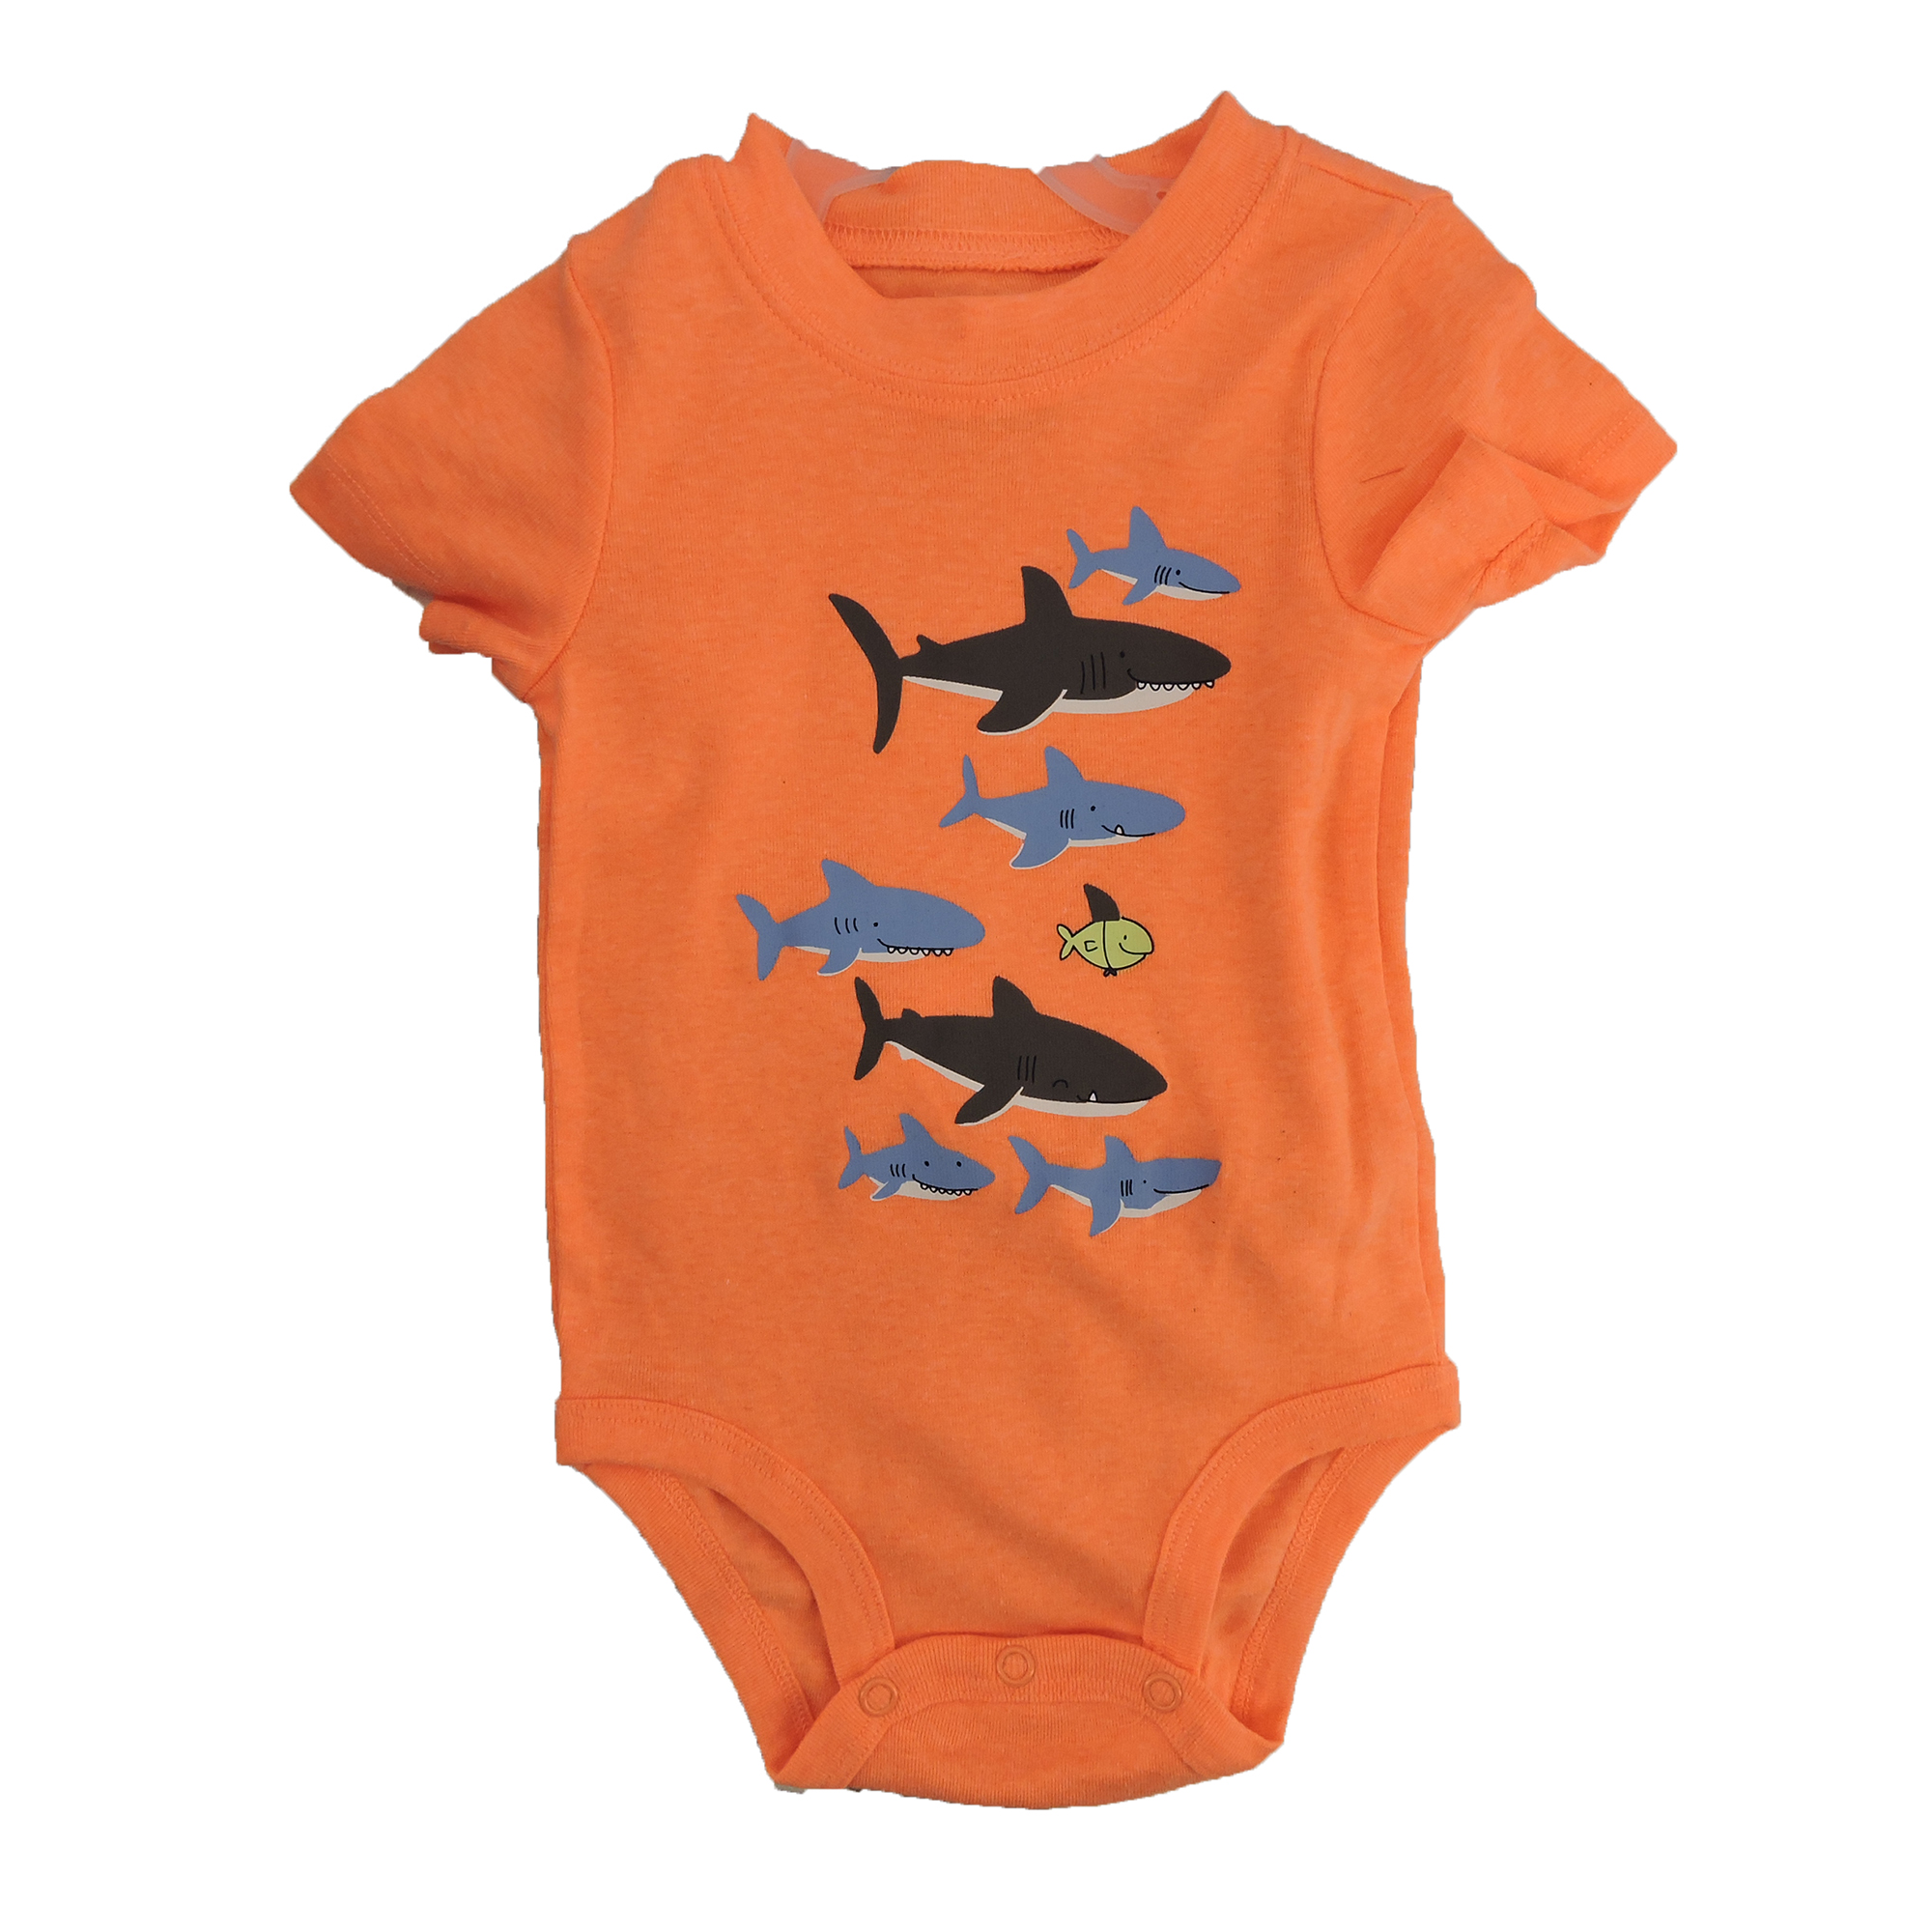 Carter's Baby Shark Bodysuit Pant 3Piece Set In Blue/Neon Orange/Heather